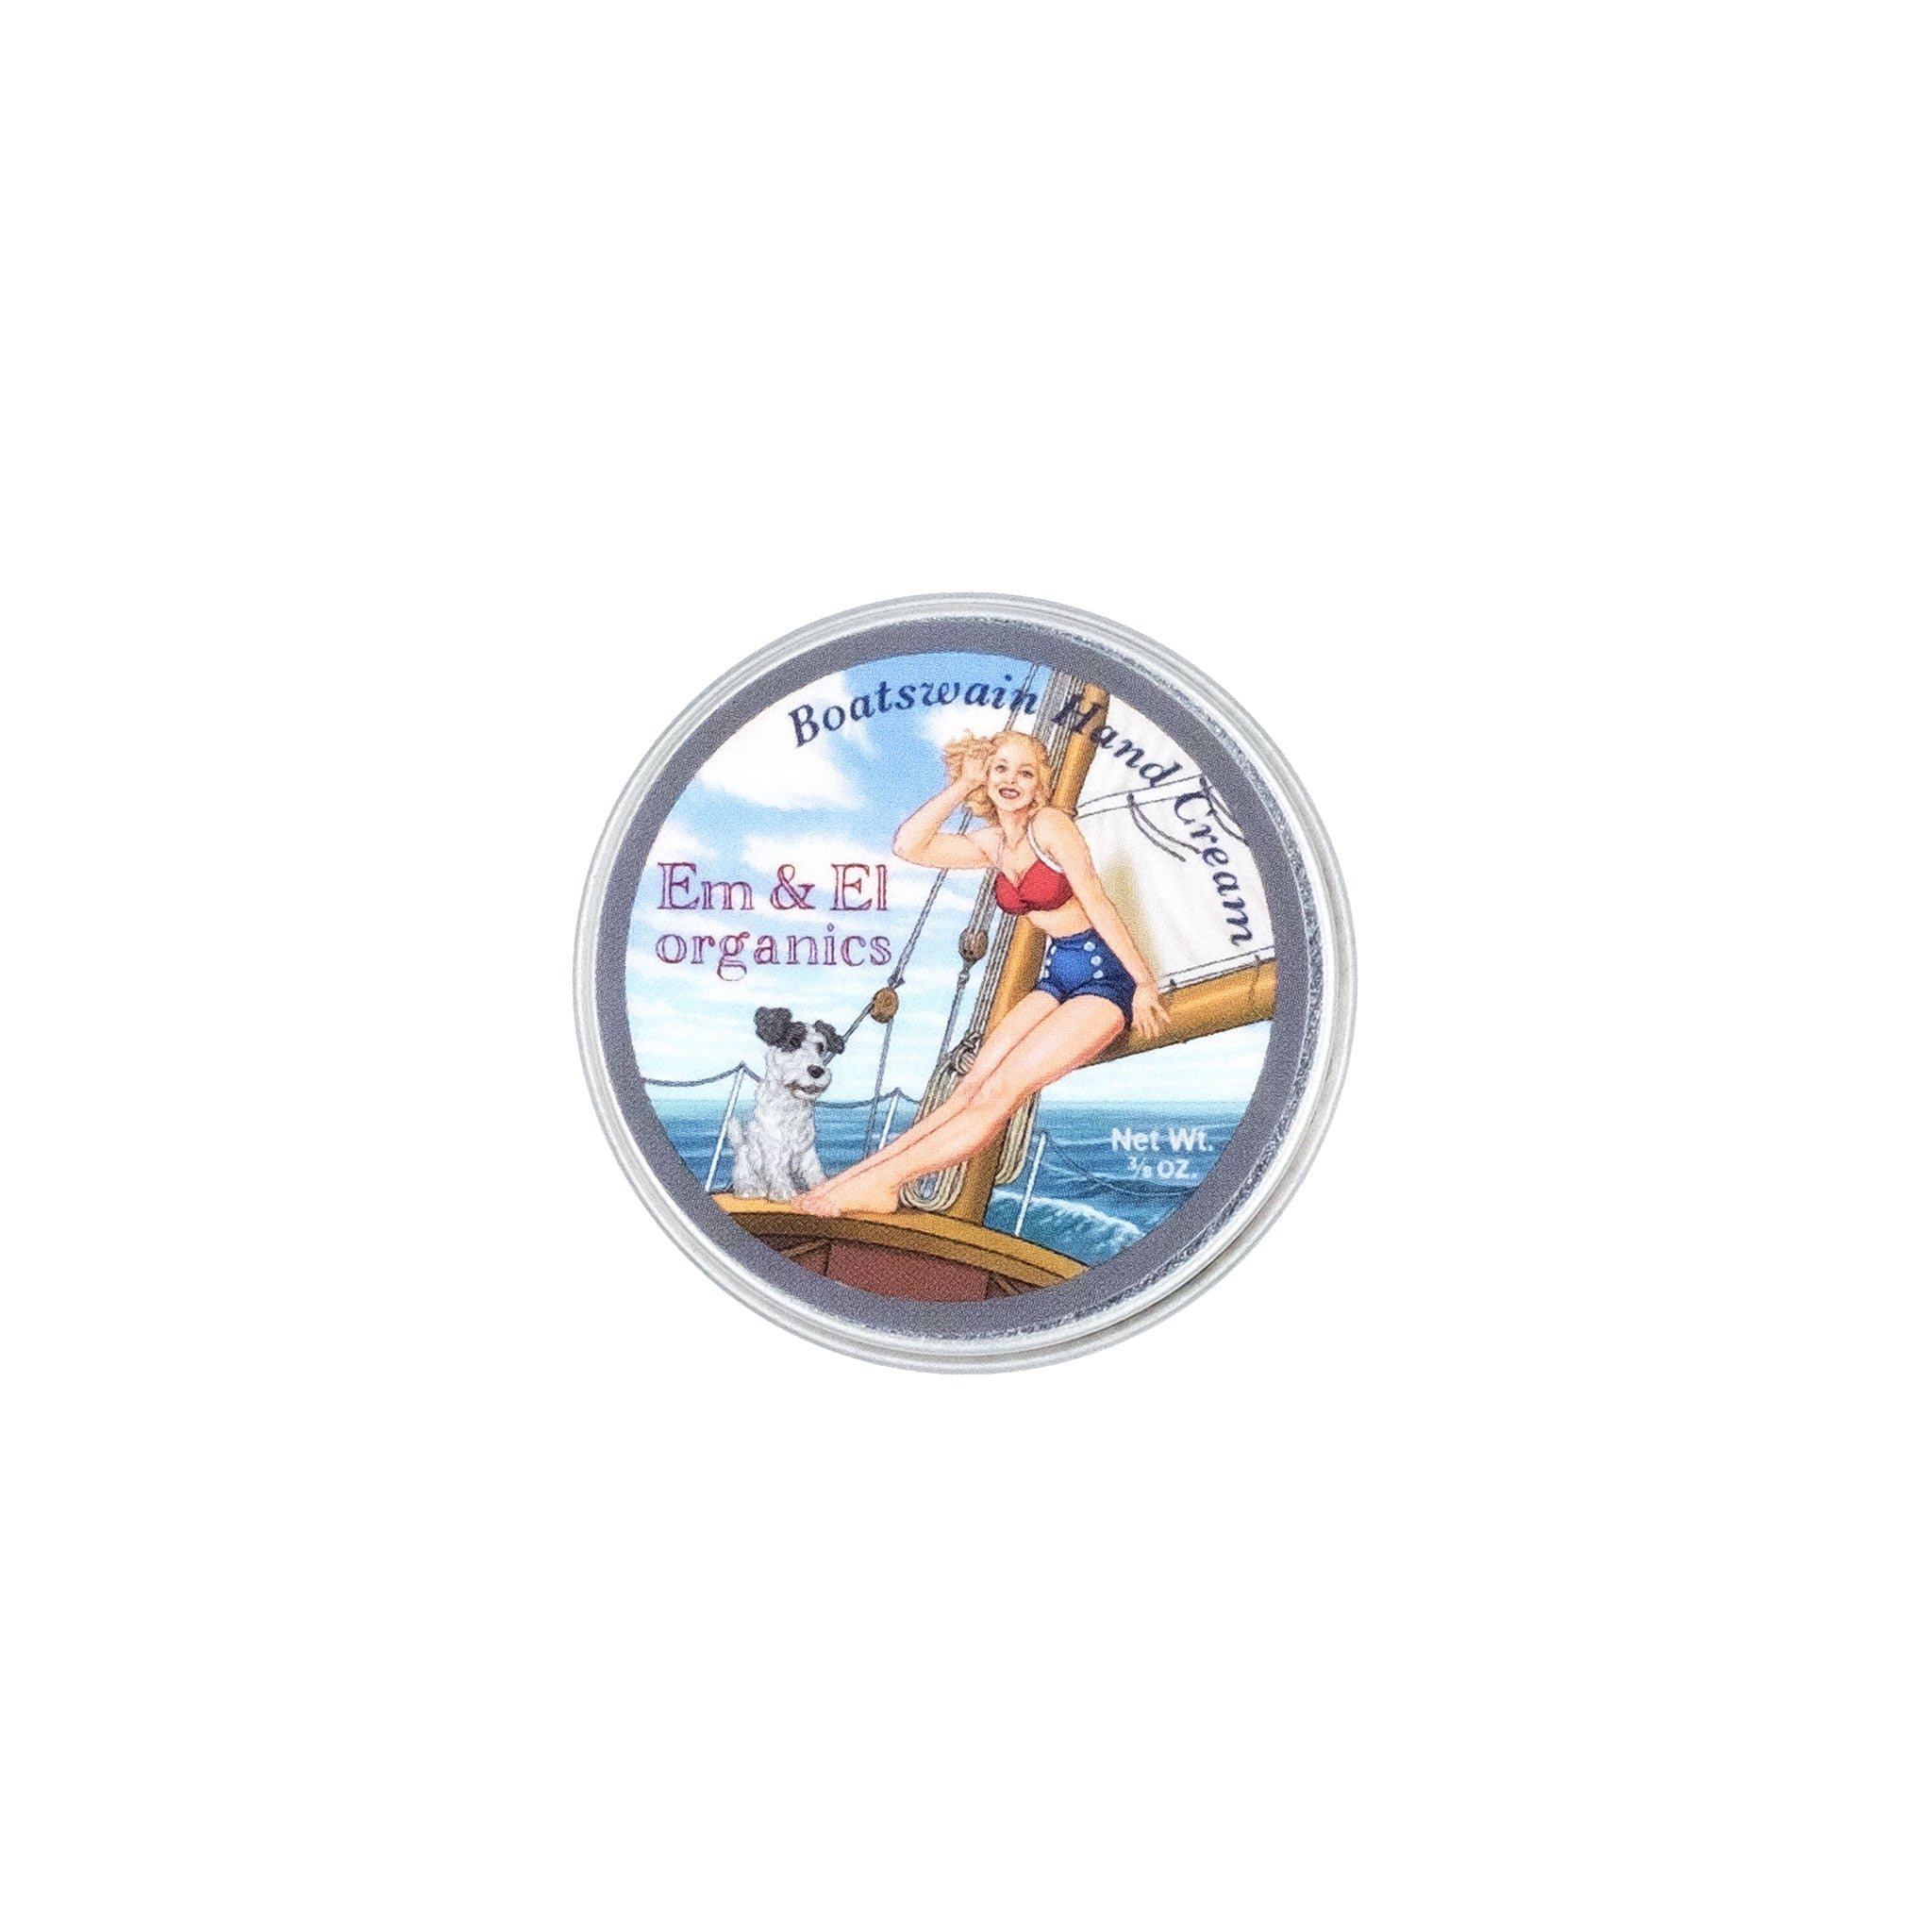 0.375 oz steel round tin of organic hand cream